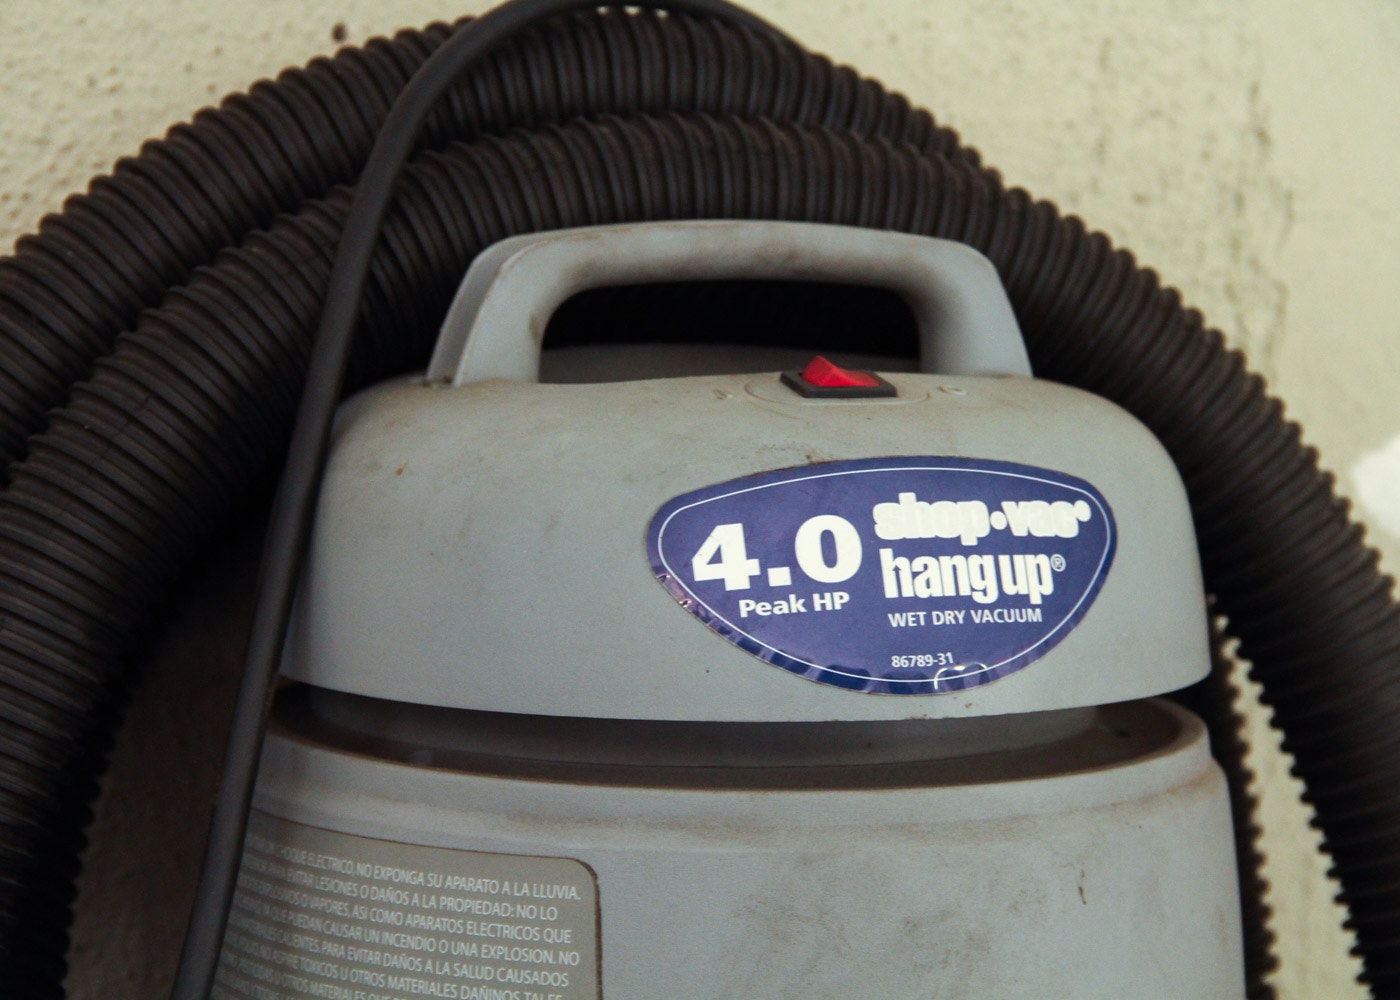 shop vac hang up 4.0 hp wet dry vacuum manual